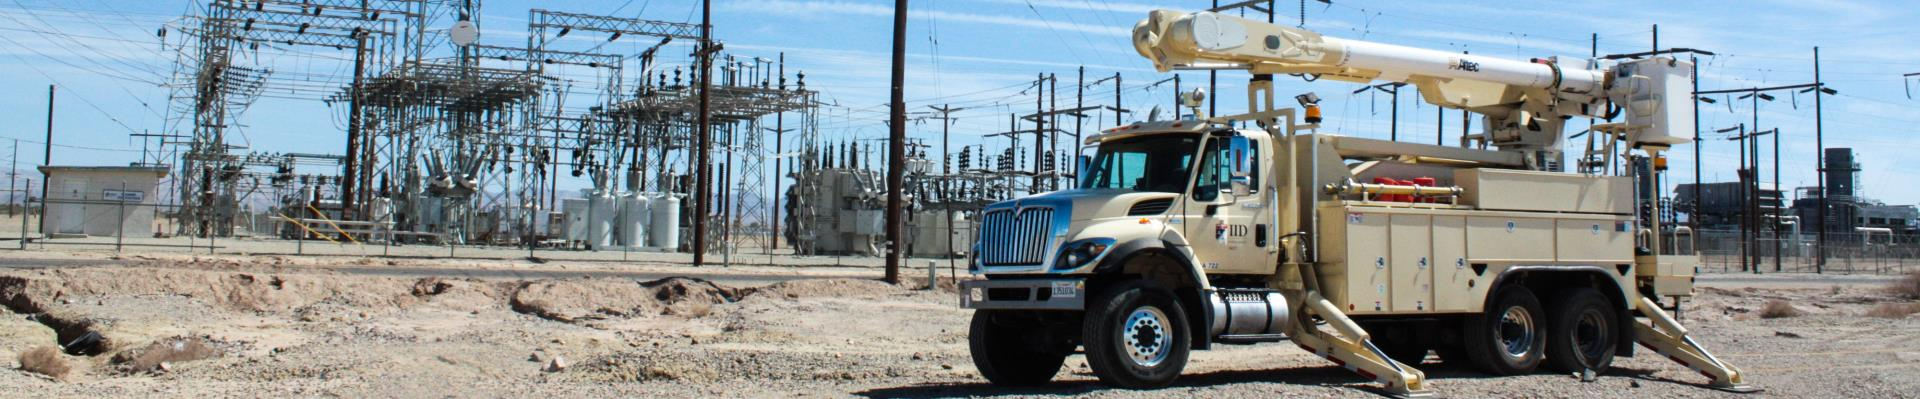 iid line truck in front of niland turbines